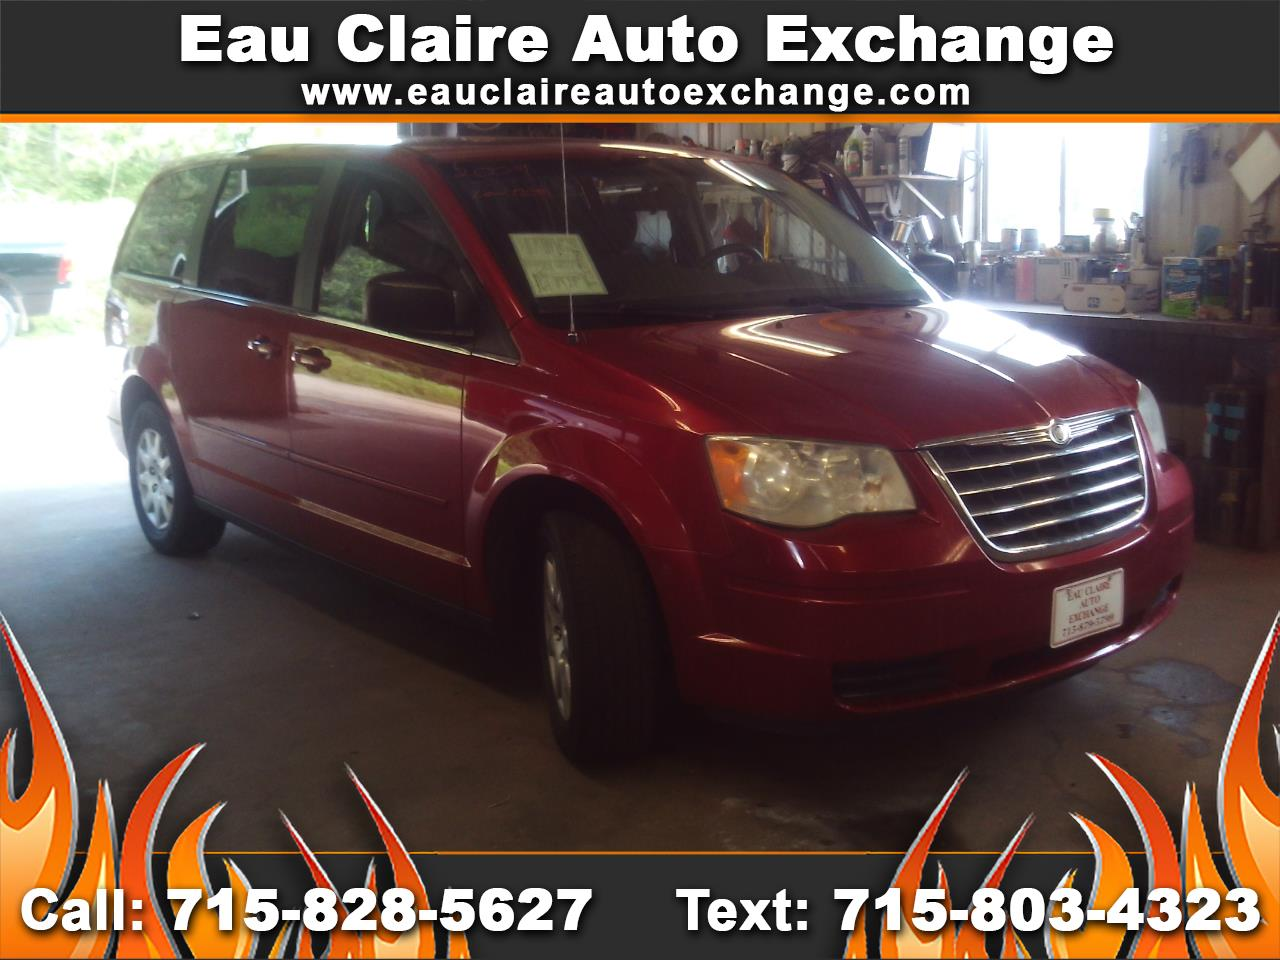 Chrysler Town & Country 4dr Wgn LX 2009